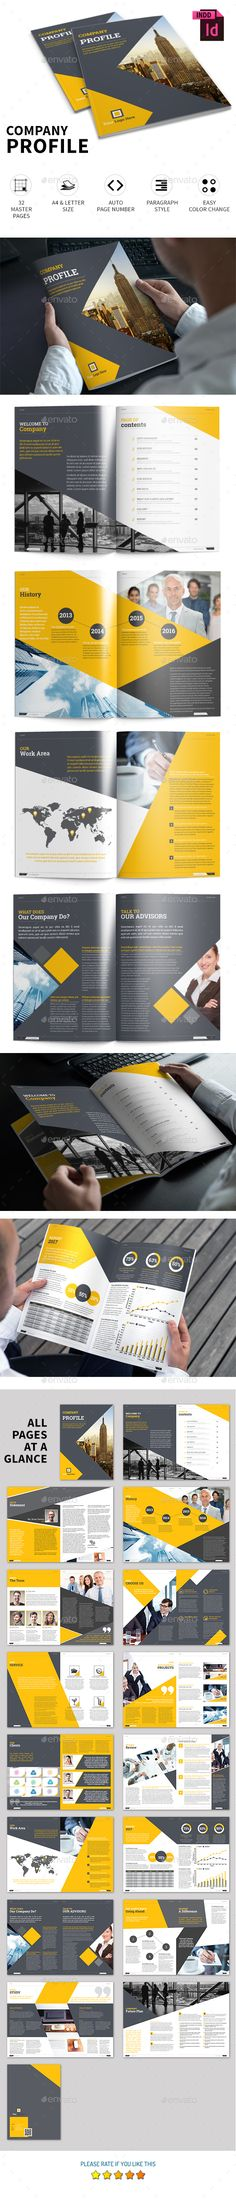 Profile Company Template Fashion Company Profile By Boxkayu On - Company profile brochure template